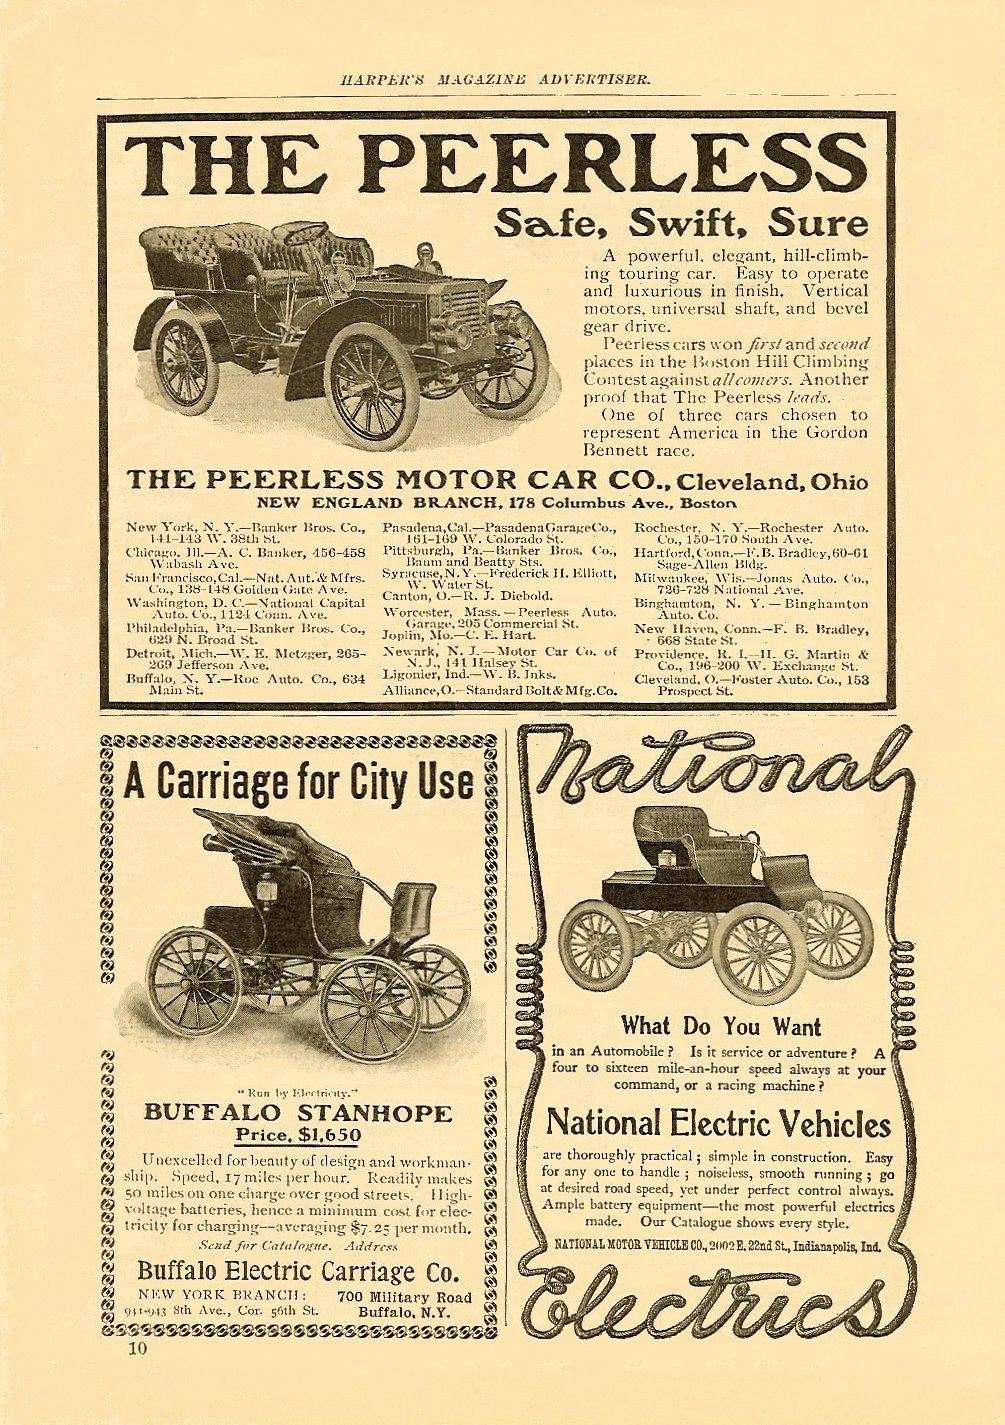 1903 6 NATIONAL National Electrics What Do You Want June 1903 HARPER'S MAGAZINE ADVERTISER 6.75″x9.75″, AD = 2.75″x4.25″ page 10